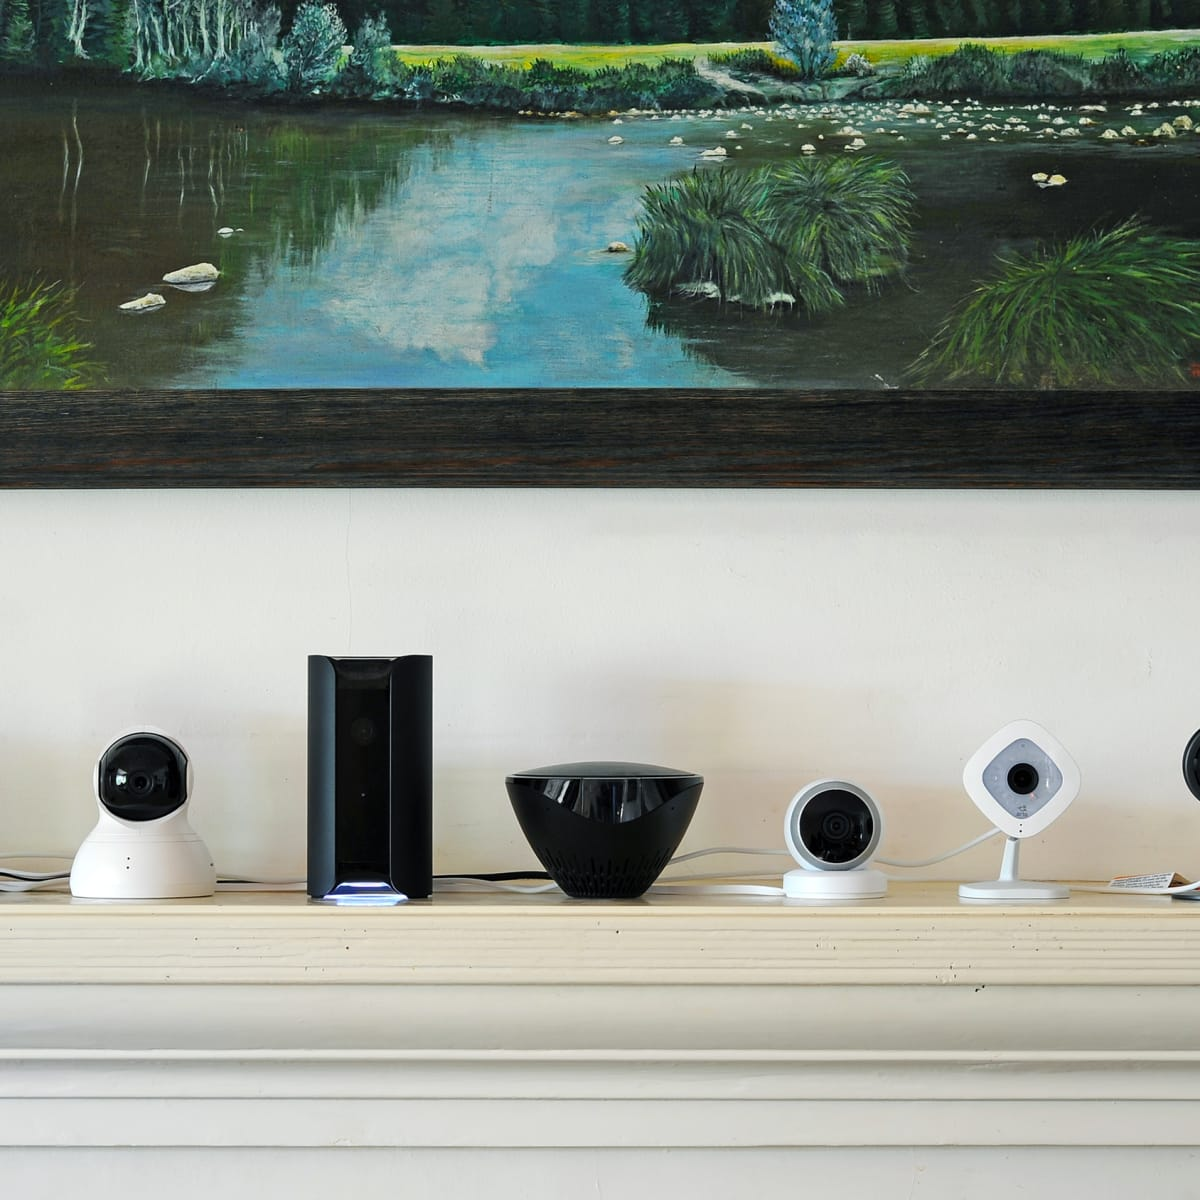 The Best Smart Indoor Security Cameras of 2019 - Reviewed Smart Home